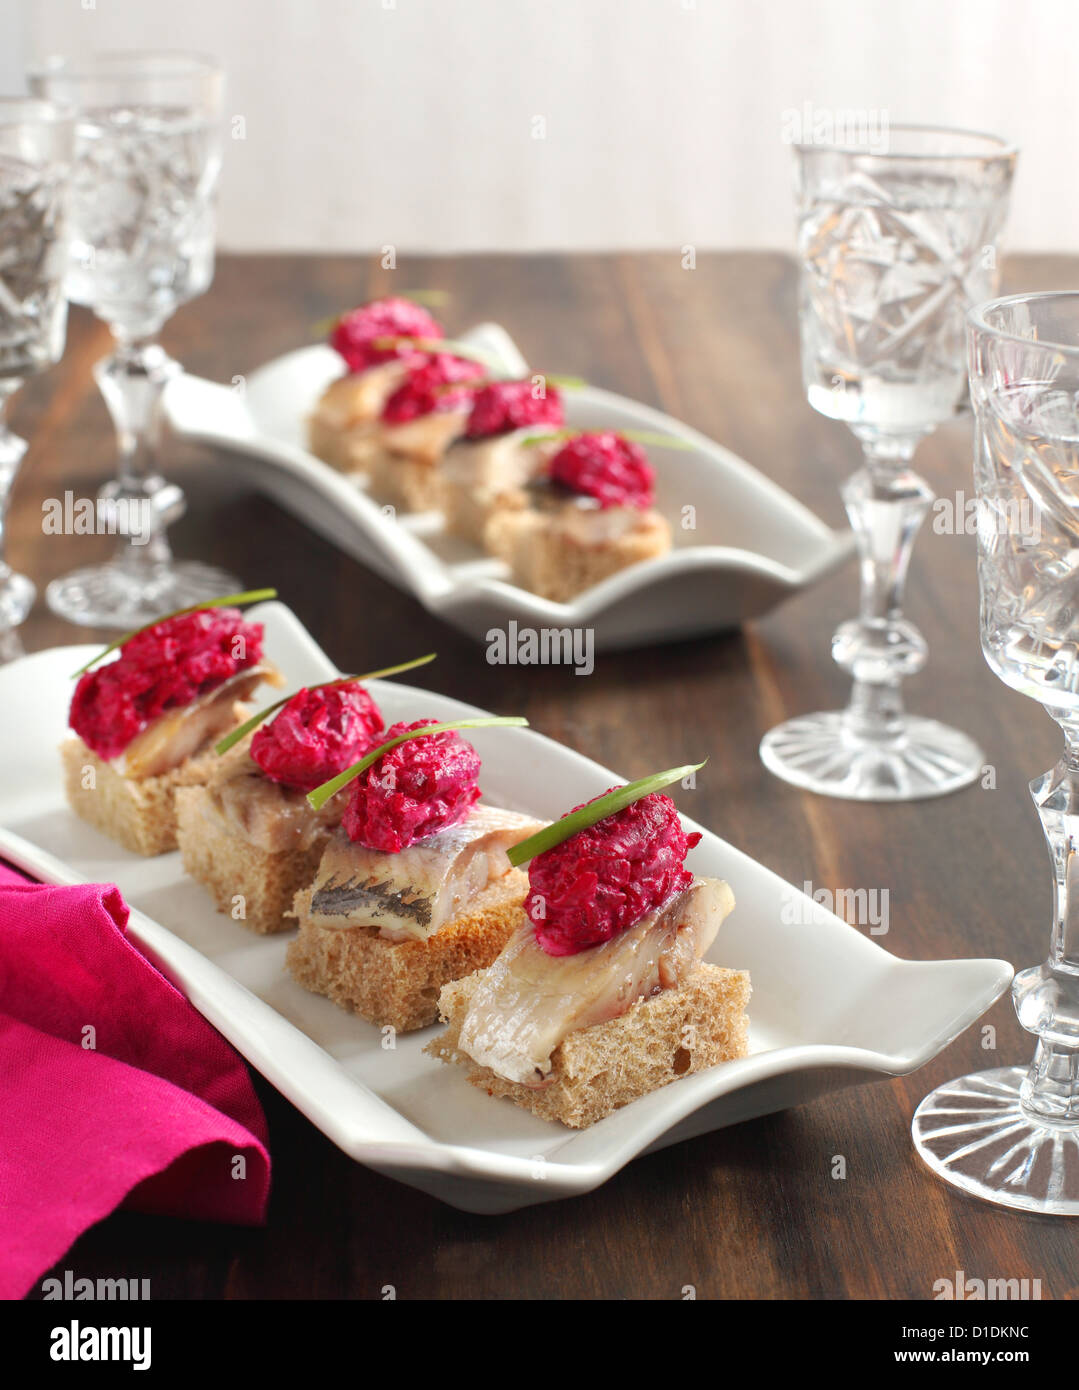 Canapes with herring fillets and beets - Stock Image